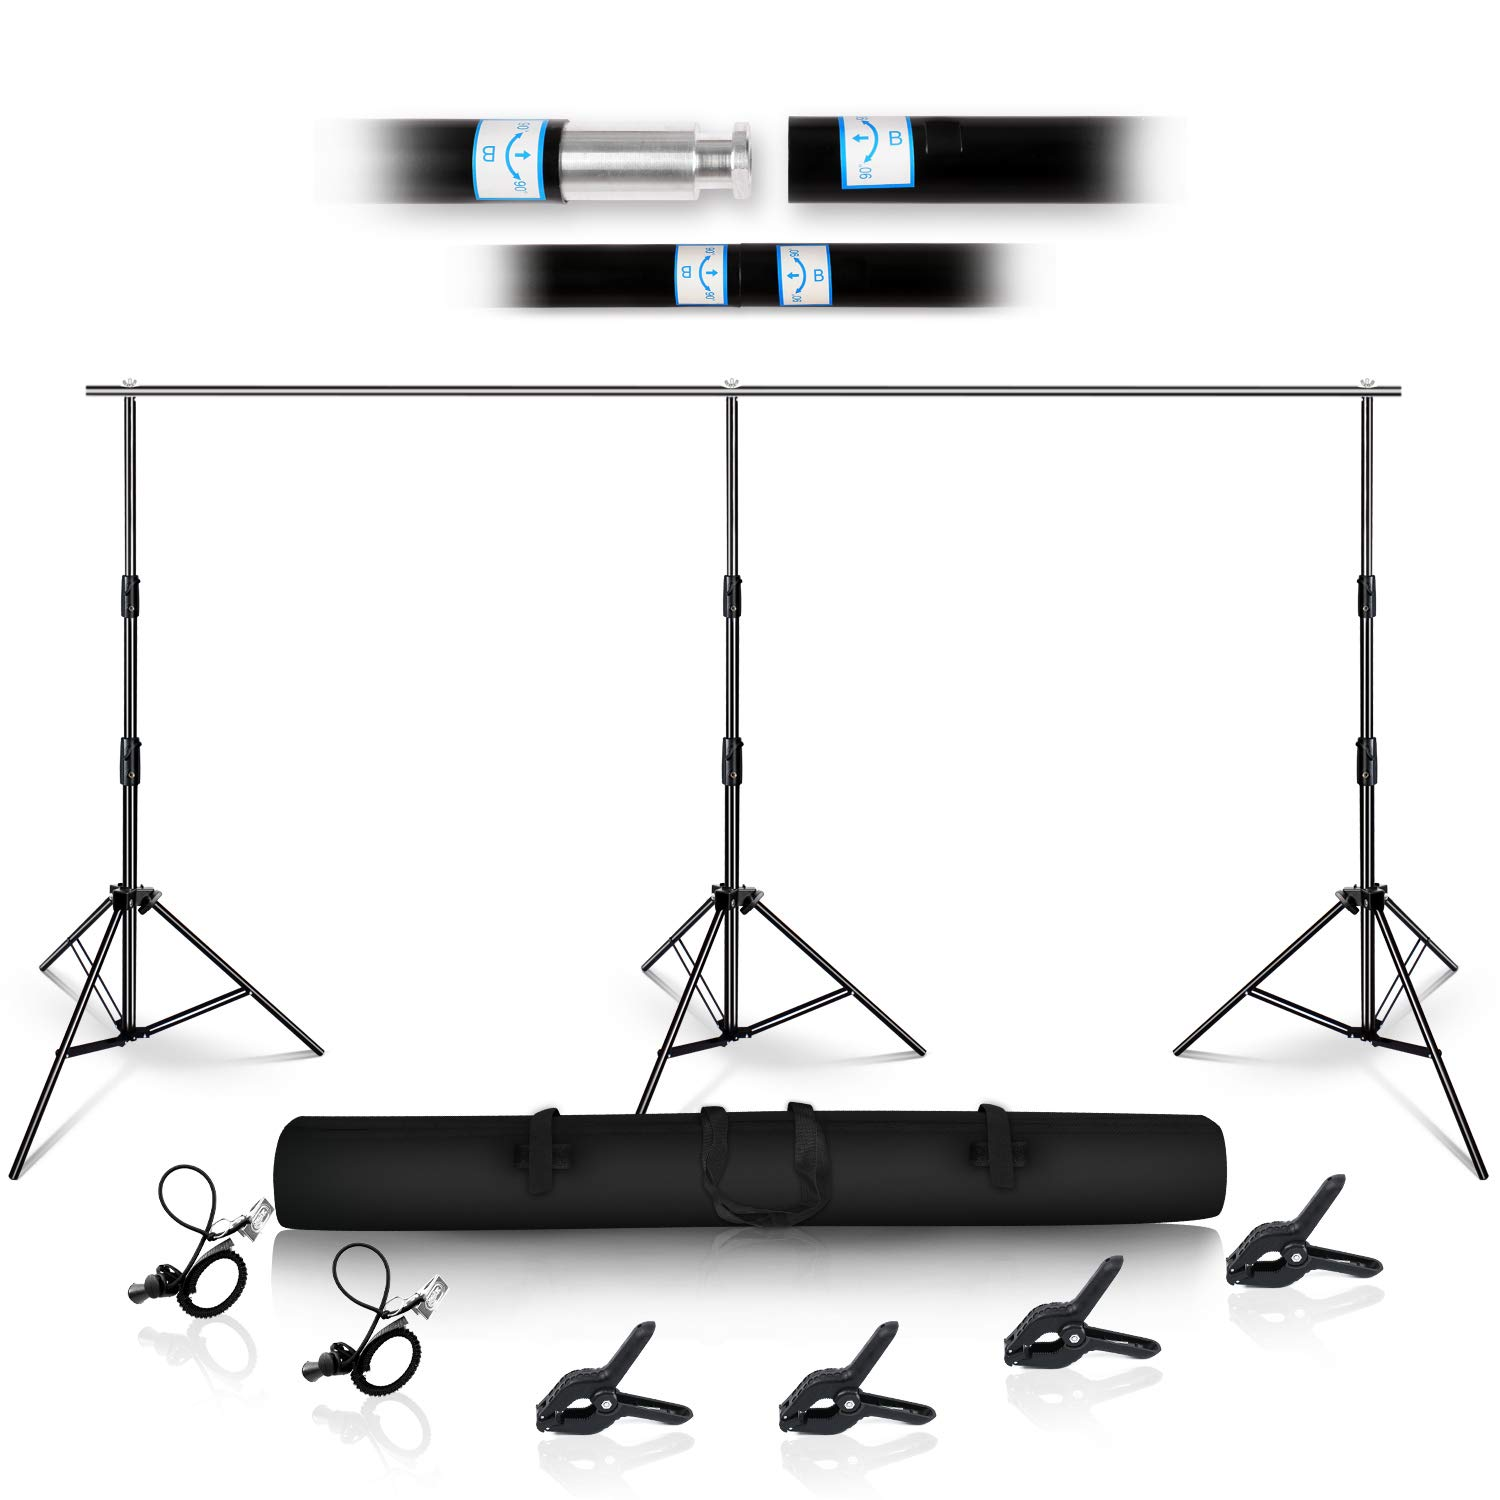 3x7M Heavy Duty Background Support Kit with Carrying Case Background Backing Support for Professional Photo Studios by YiXiang